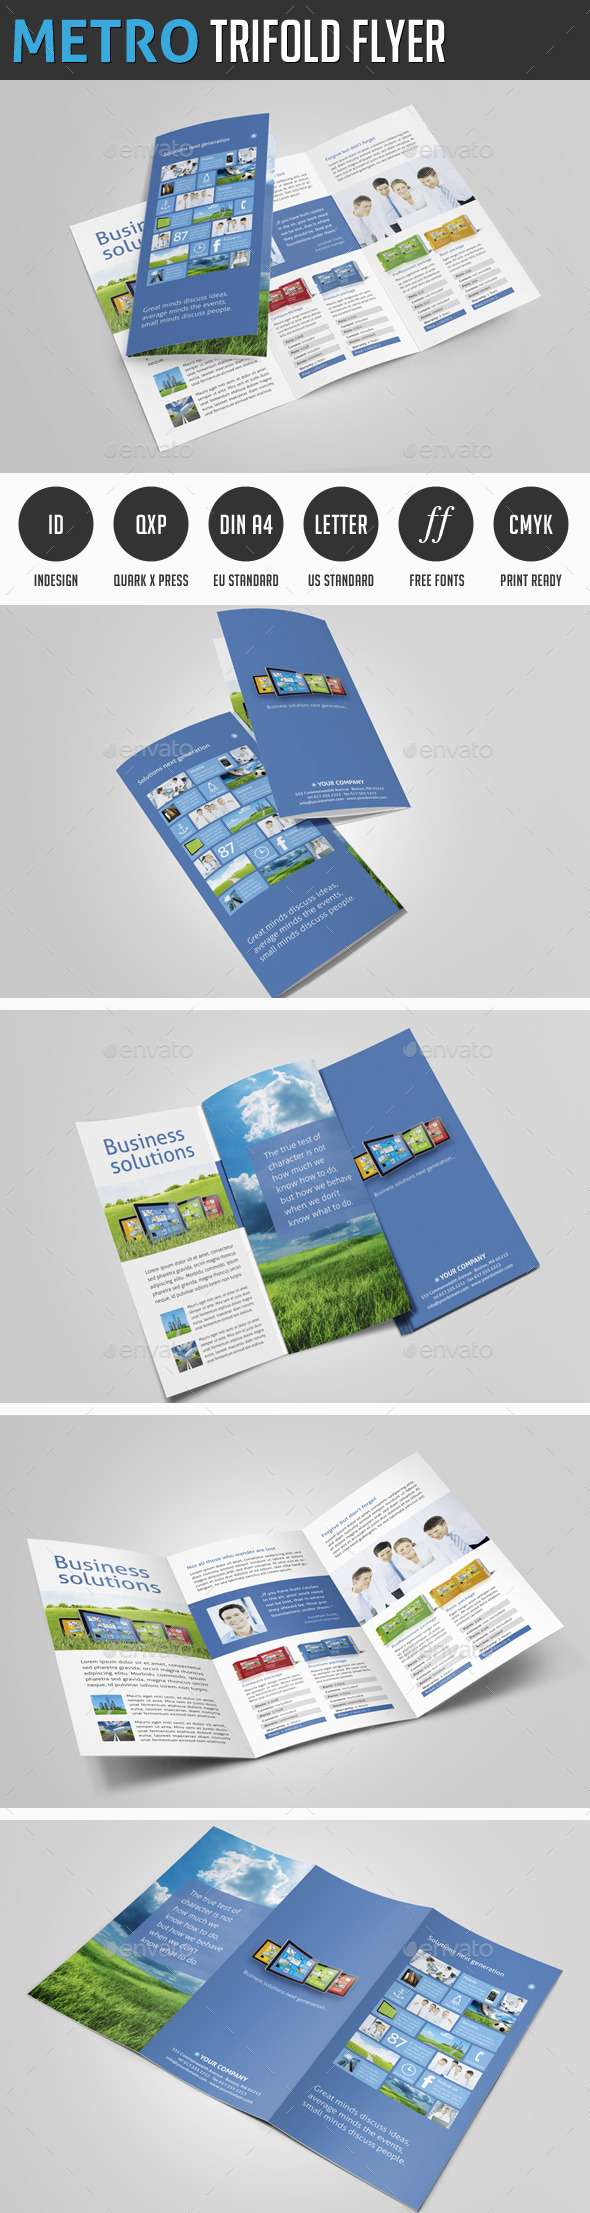 Metro Trifold Flyer - Corporate Flyers